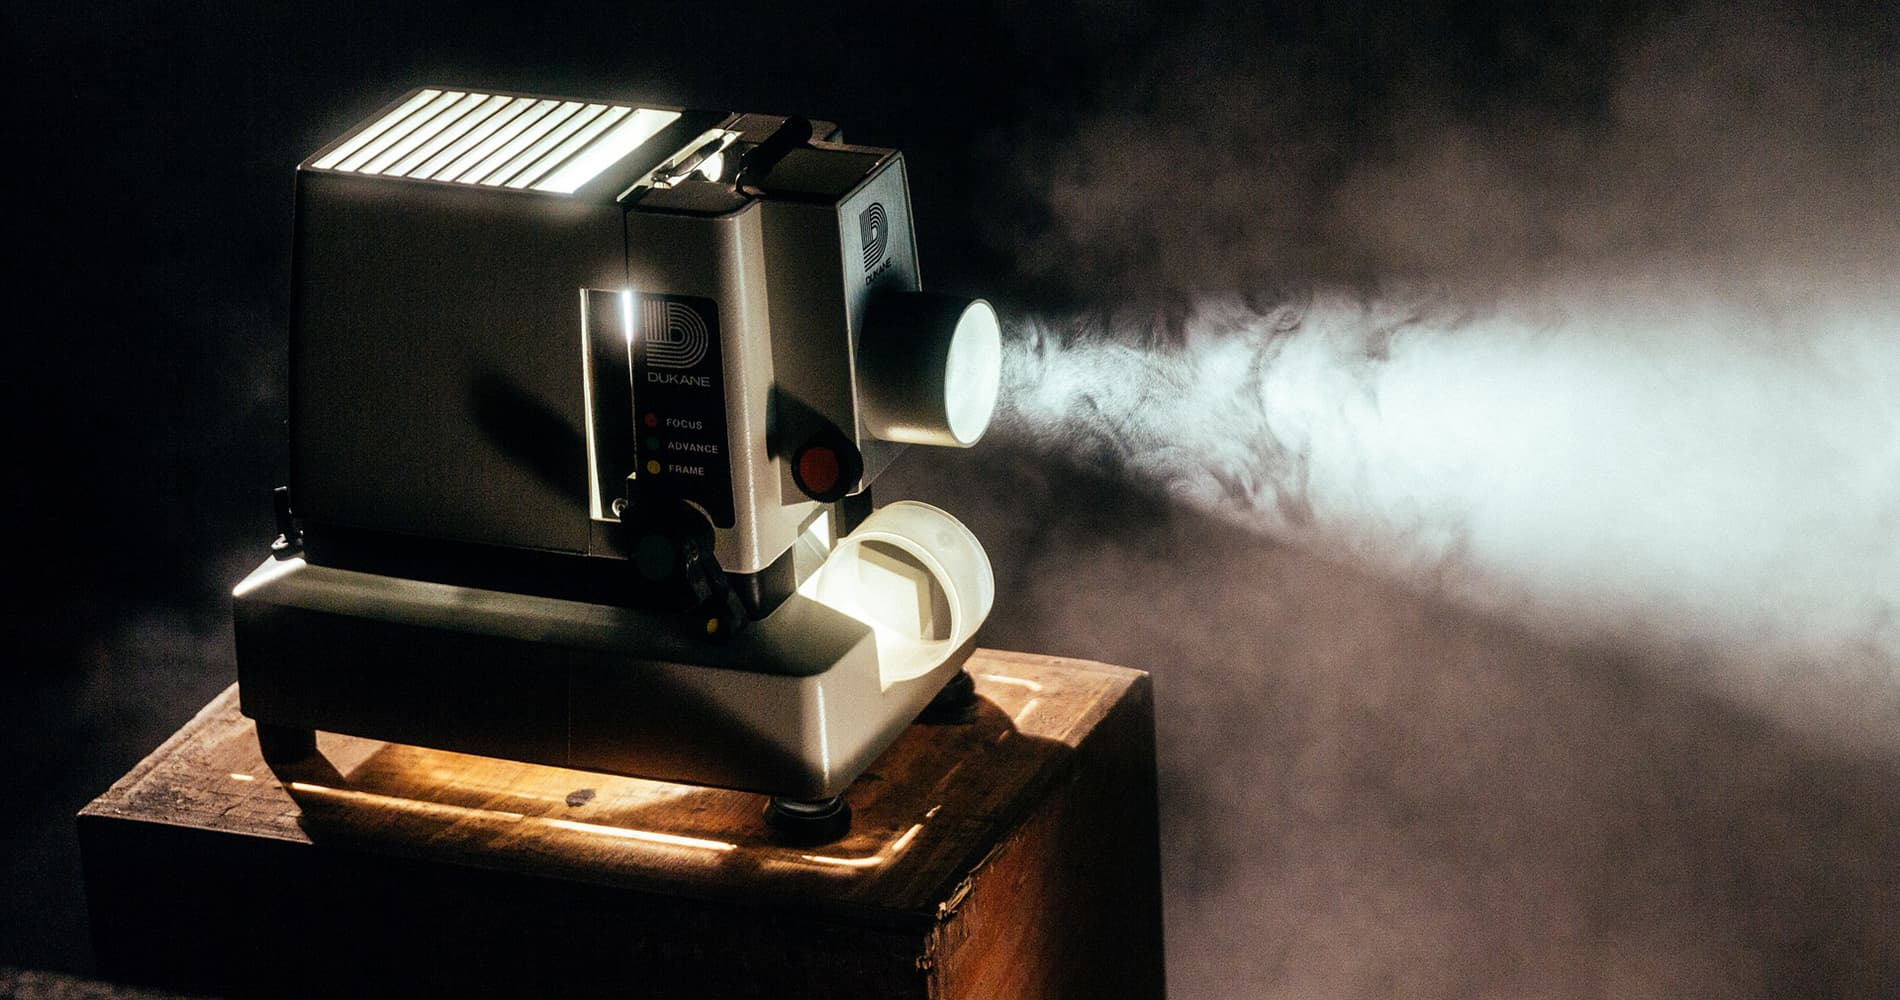 An old fashioned slide projector.